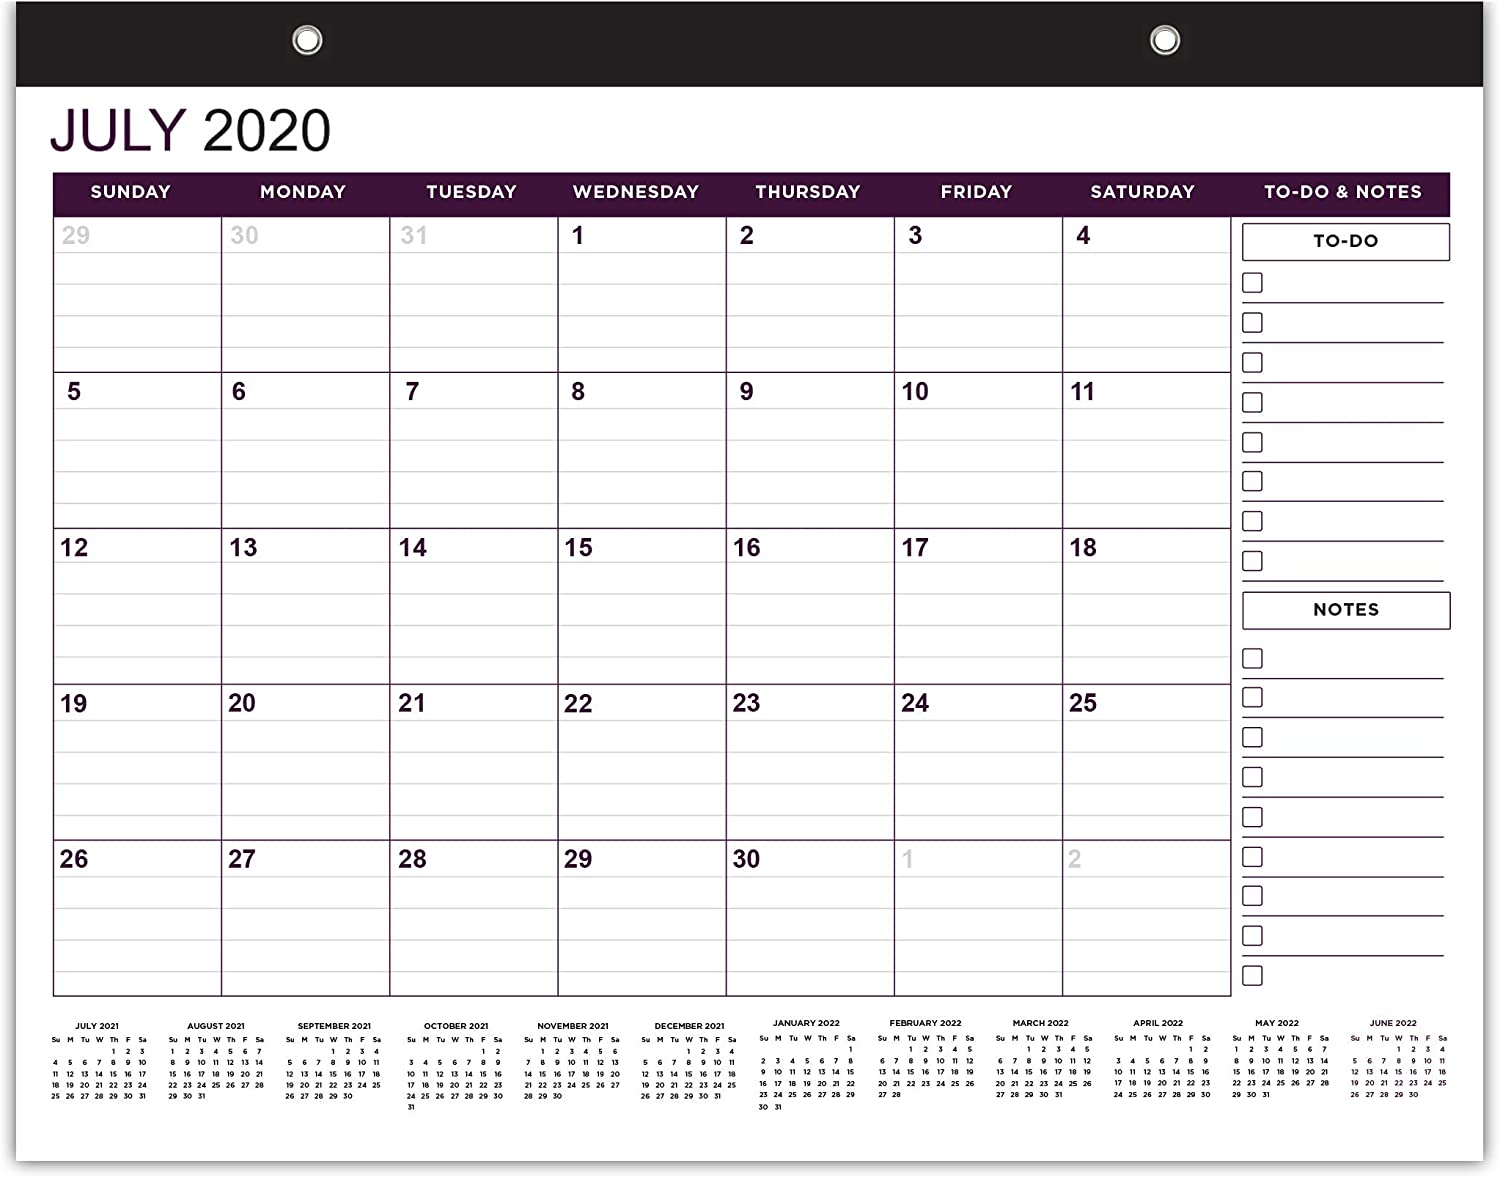 Purple Wall & Desktop Calendar 2020 & 2022- Two Years Wall Calender July 2020 - June 2022 Monthly 17.75 x 13.75 Inches Large Calendars 2020-2021